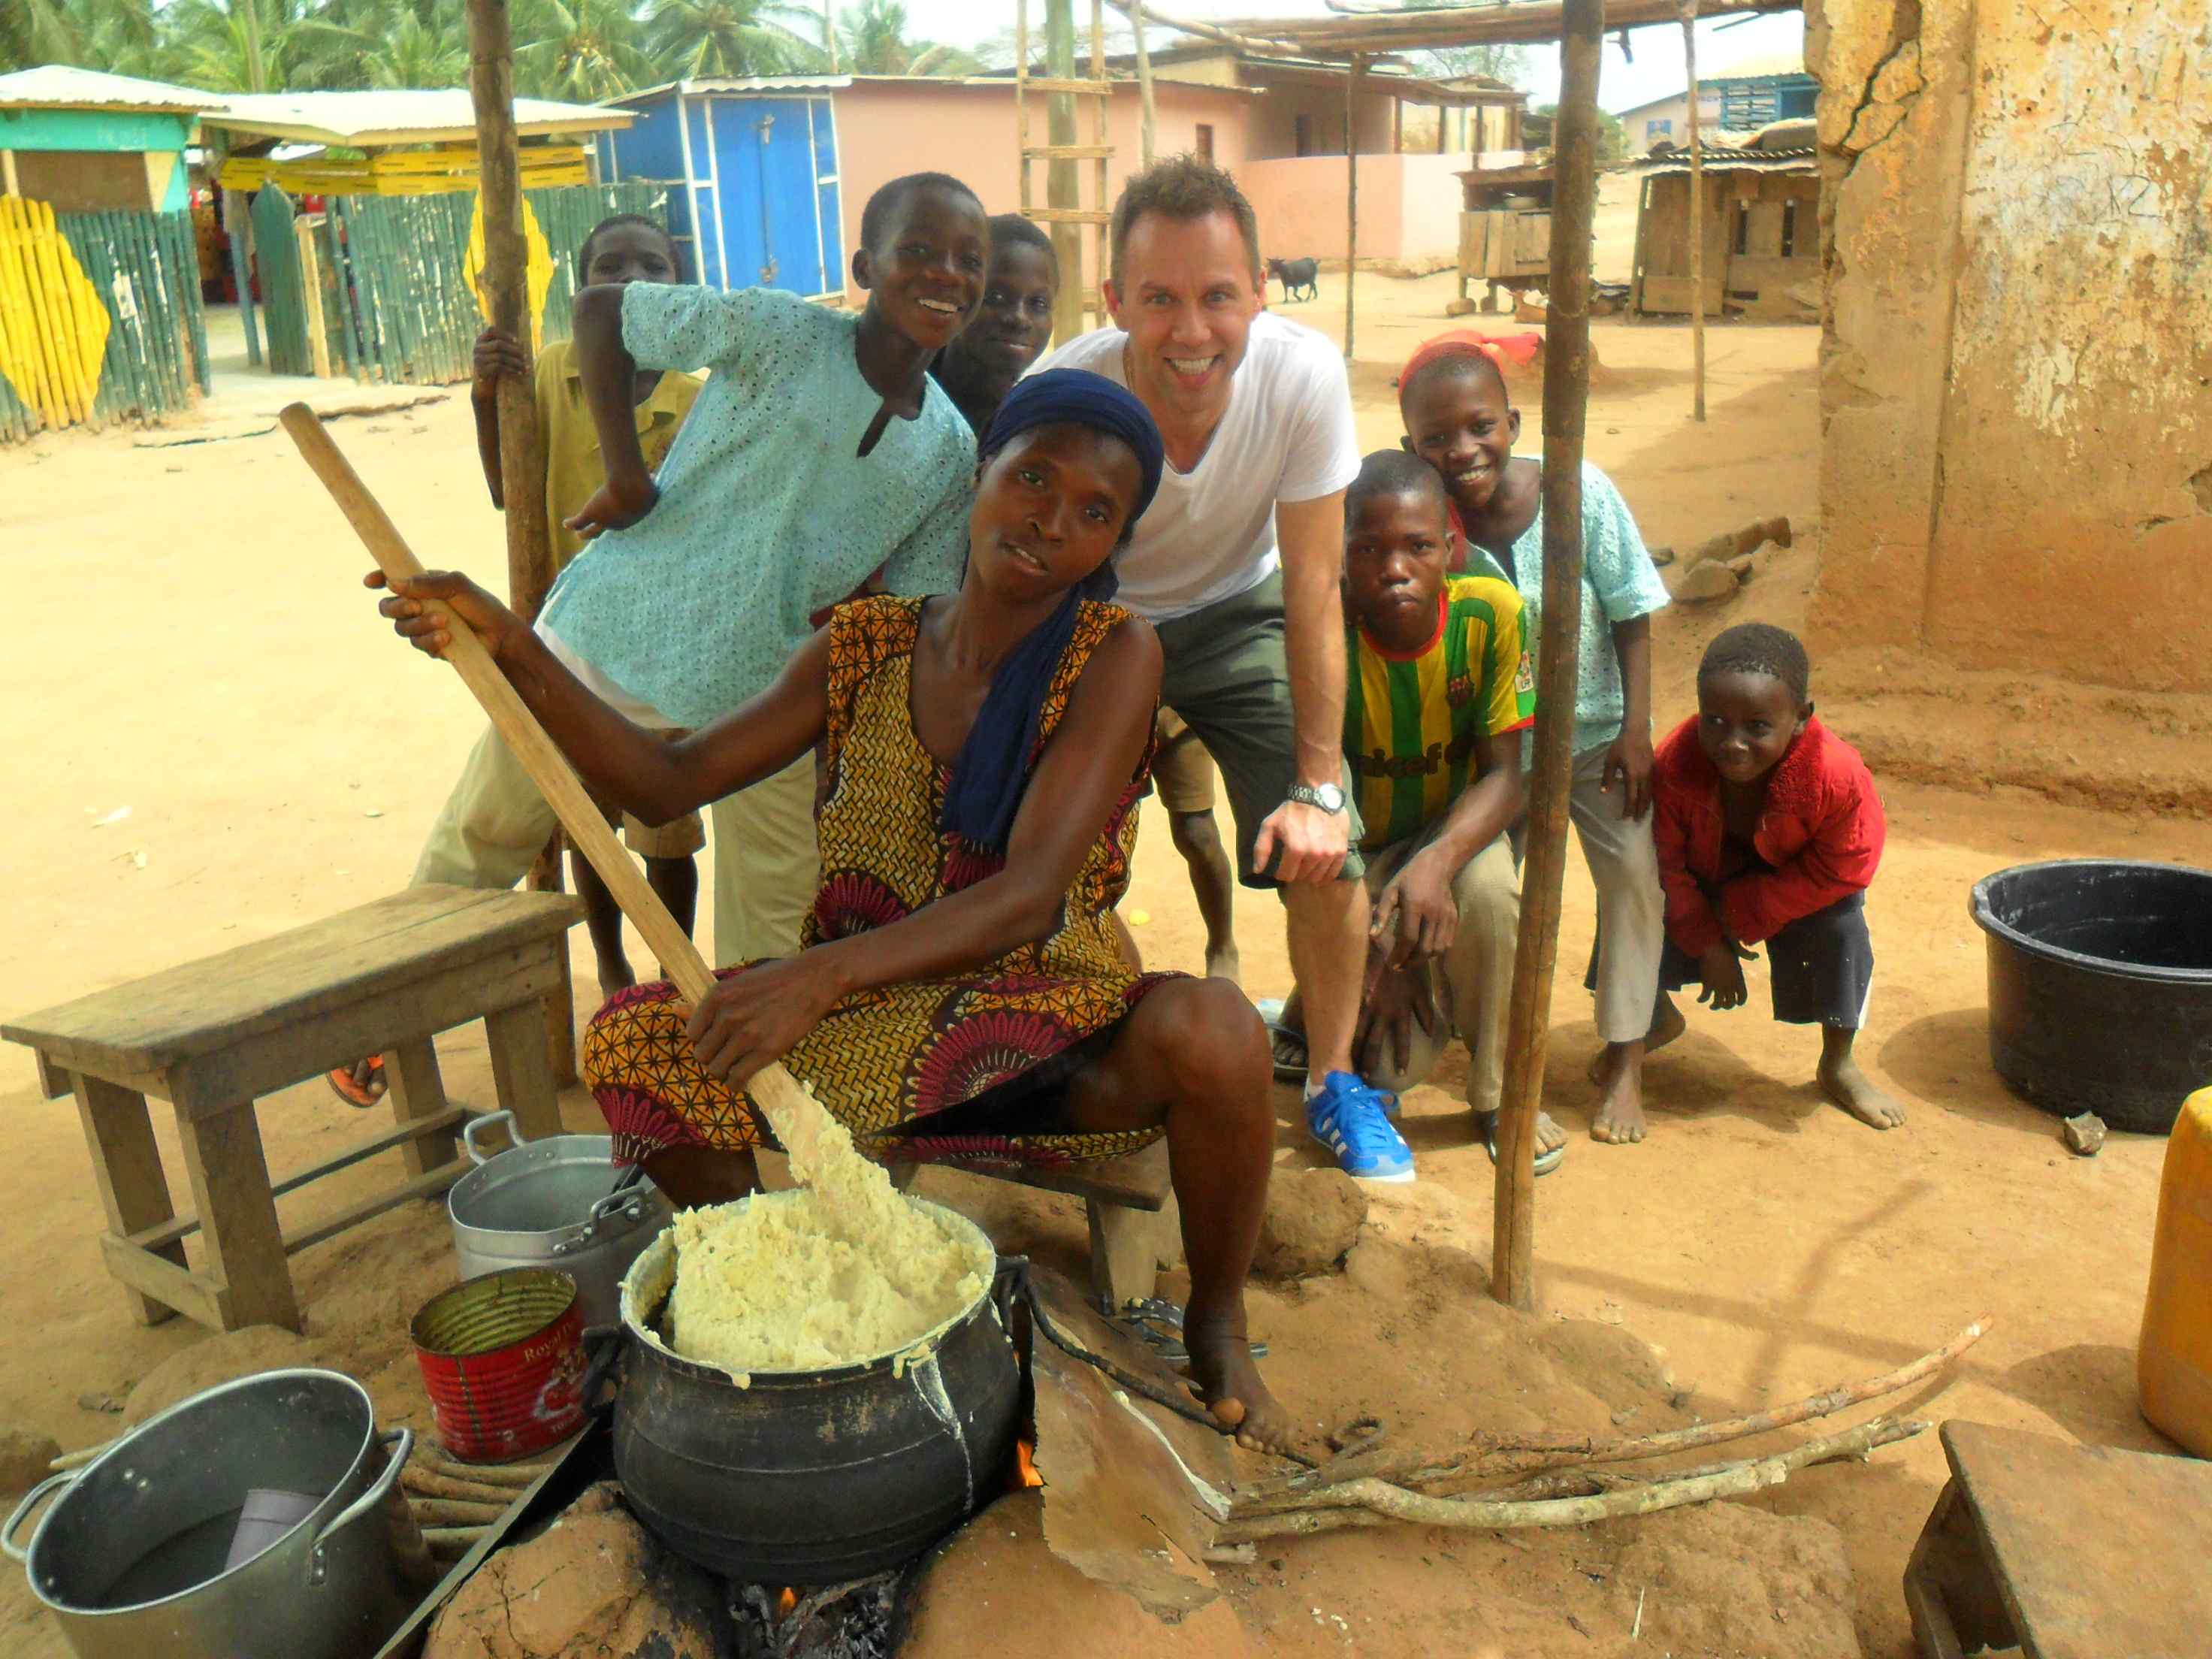 Jeffery Straker in a Village in Ghana